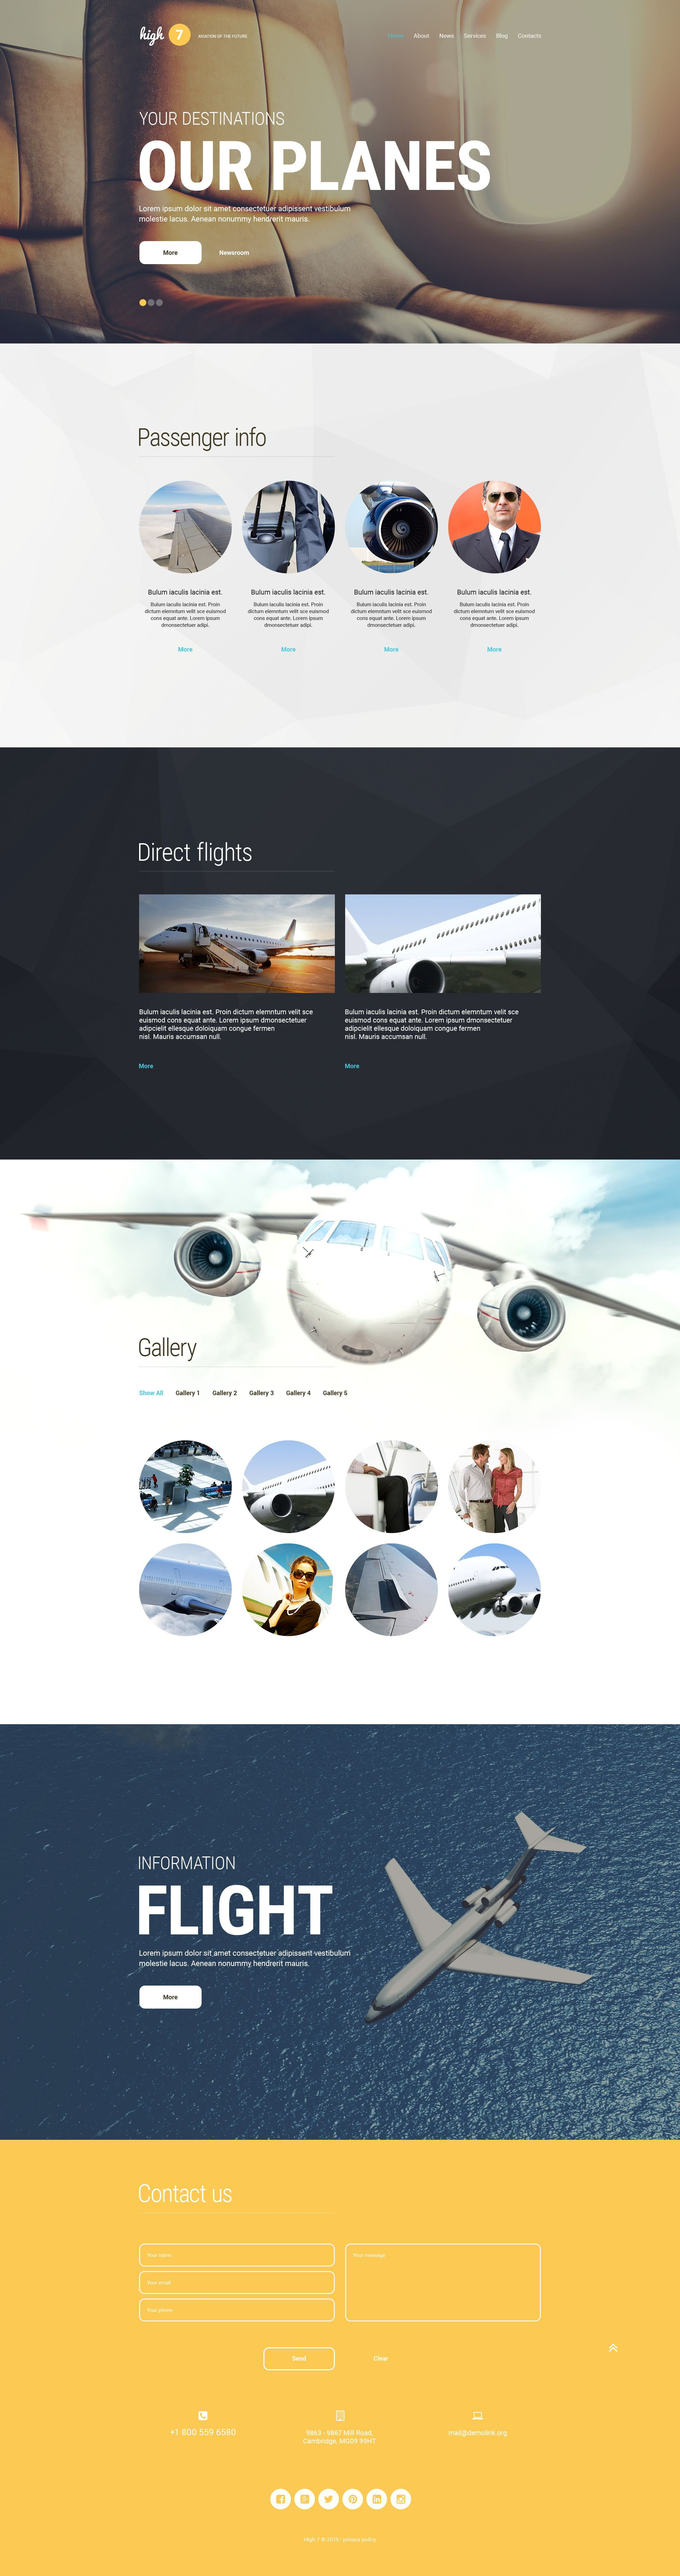 The High7 Private Airlines WordPress Design 54576, one of the best WordPress themes of its kind (business, most popular), also known as high7 private airlines WordPress template, airport company WordPress template, flight hotels WordPress template, car WordPress template, citybreaks WordPress template, country WordPress template, departure WordPress template, destination WordPress template, airport WordPress template, returning WordPress template, plan WordPress template, booking WordPress template, ticket WordPress template, arrival WordPress template, reservation WordPress template, travel WordPress template, vacation WordPress template, stewardess WordPress template, offers WordPress template, tours WordPress template, resort WordPress template, location WordPress template, authorization WordPress template, guide WordPress template, visa WordPress template, discount WordPress template, liner and related with high7 private airlines, airport company, flight hotels, car, citybreaks, country, departure, destination, airport, returning, plan, booking, ticket, arrival, reservation, travel, vacation, stewardess, offers, tours, resort, location, authorization, guide, visa, discount, liner, etc.